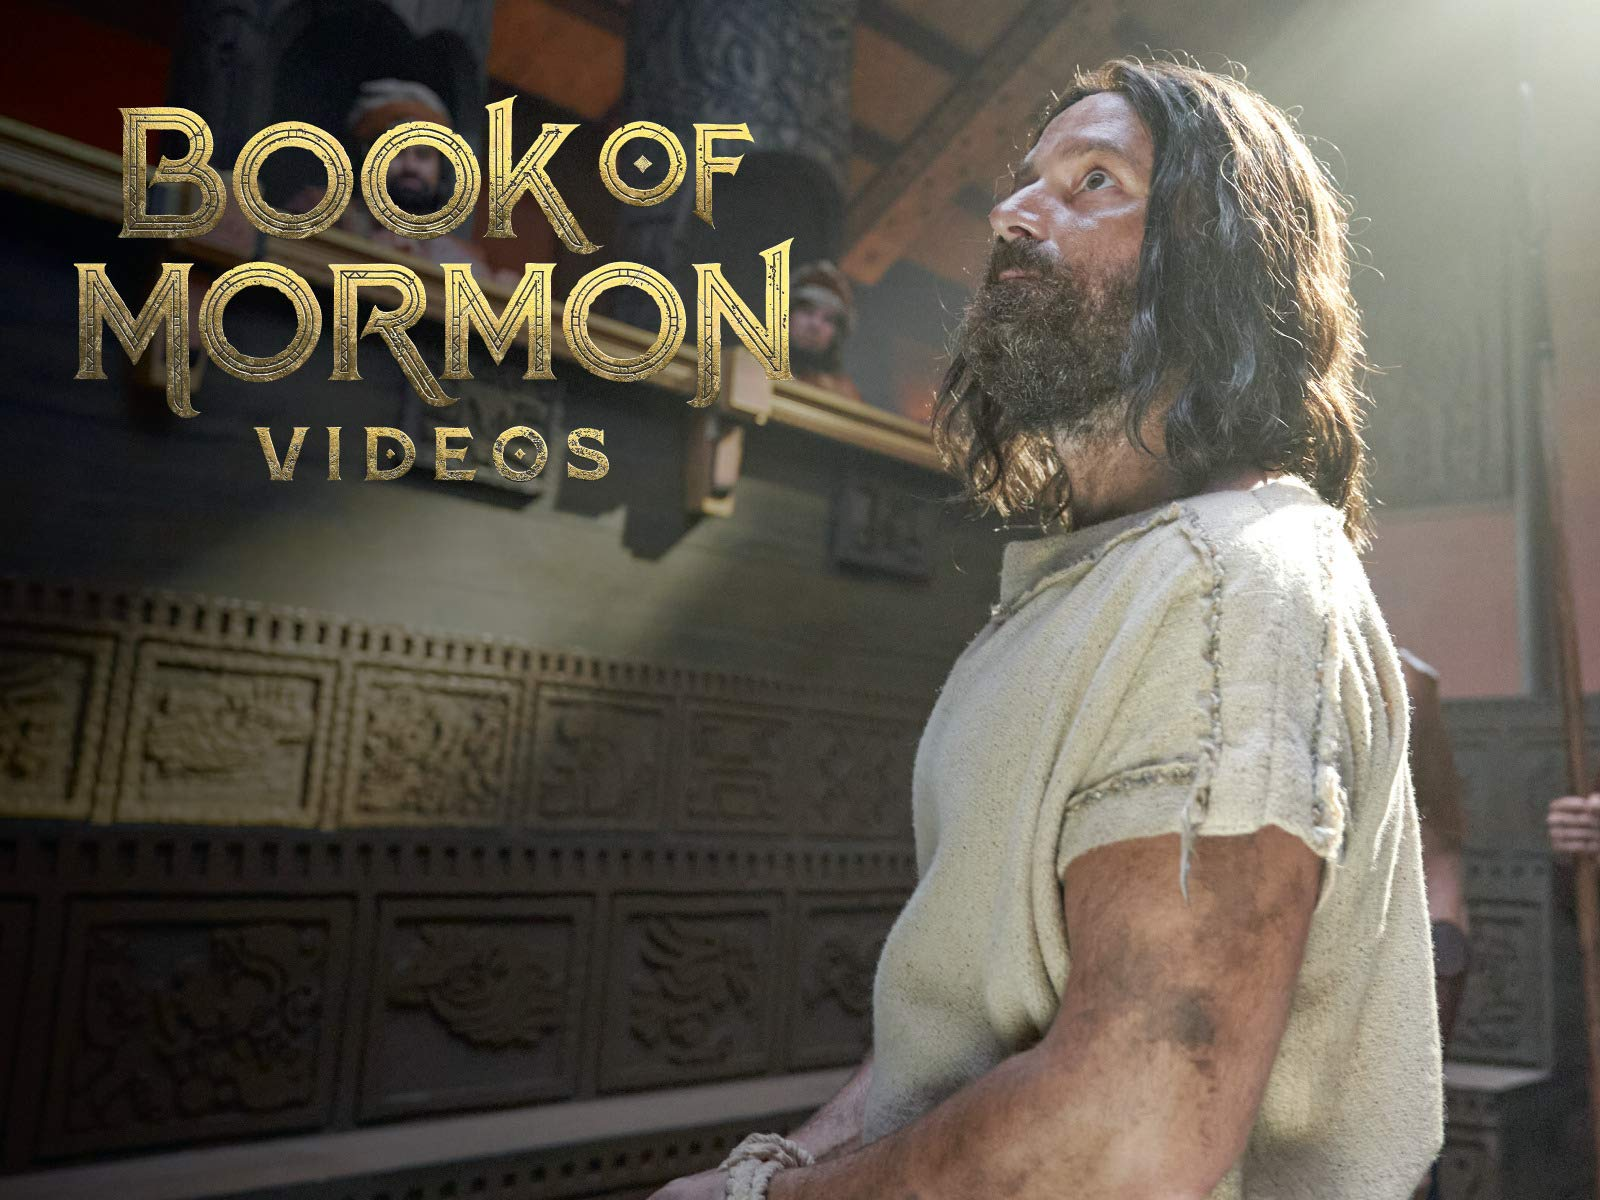 Book of Mormon Videos - Season 3